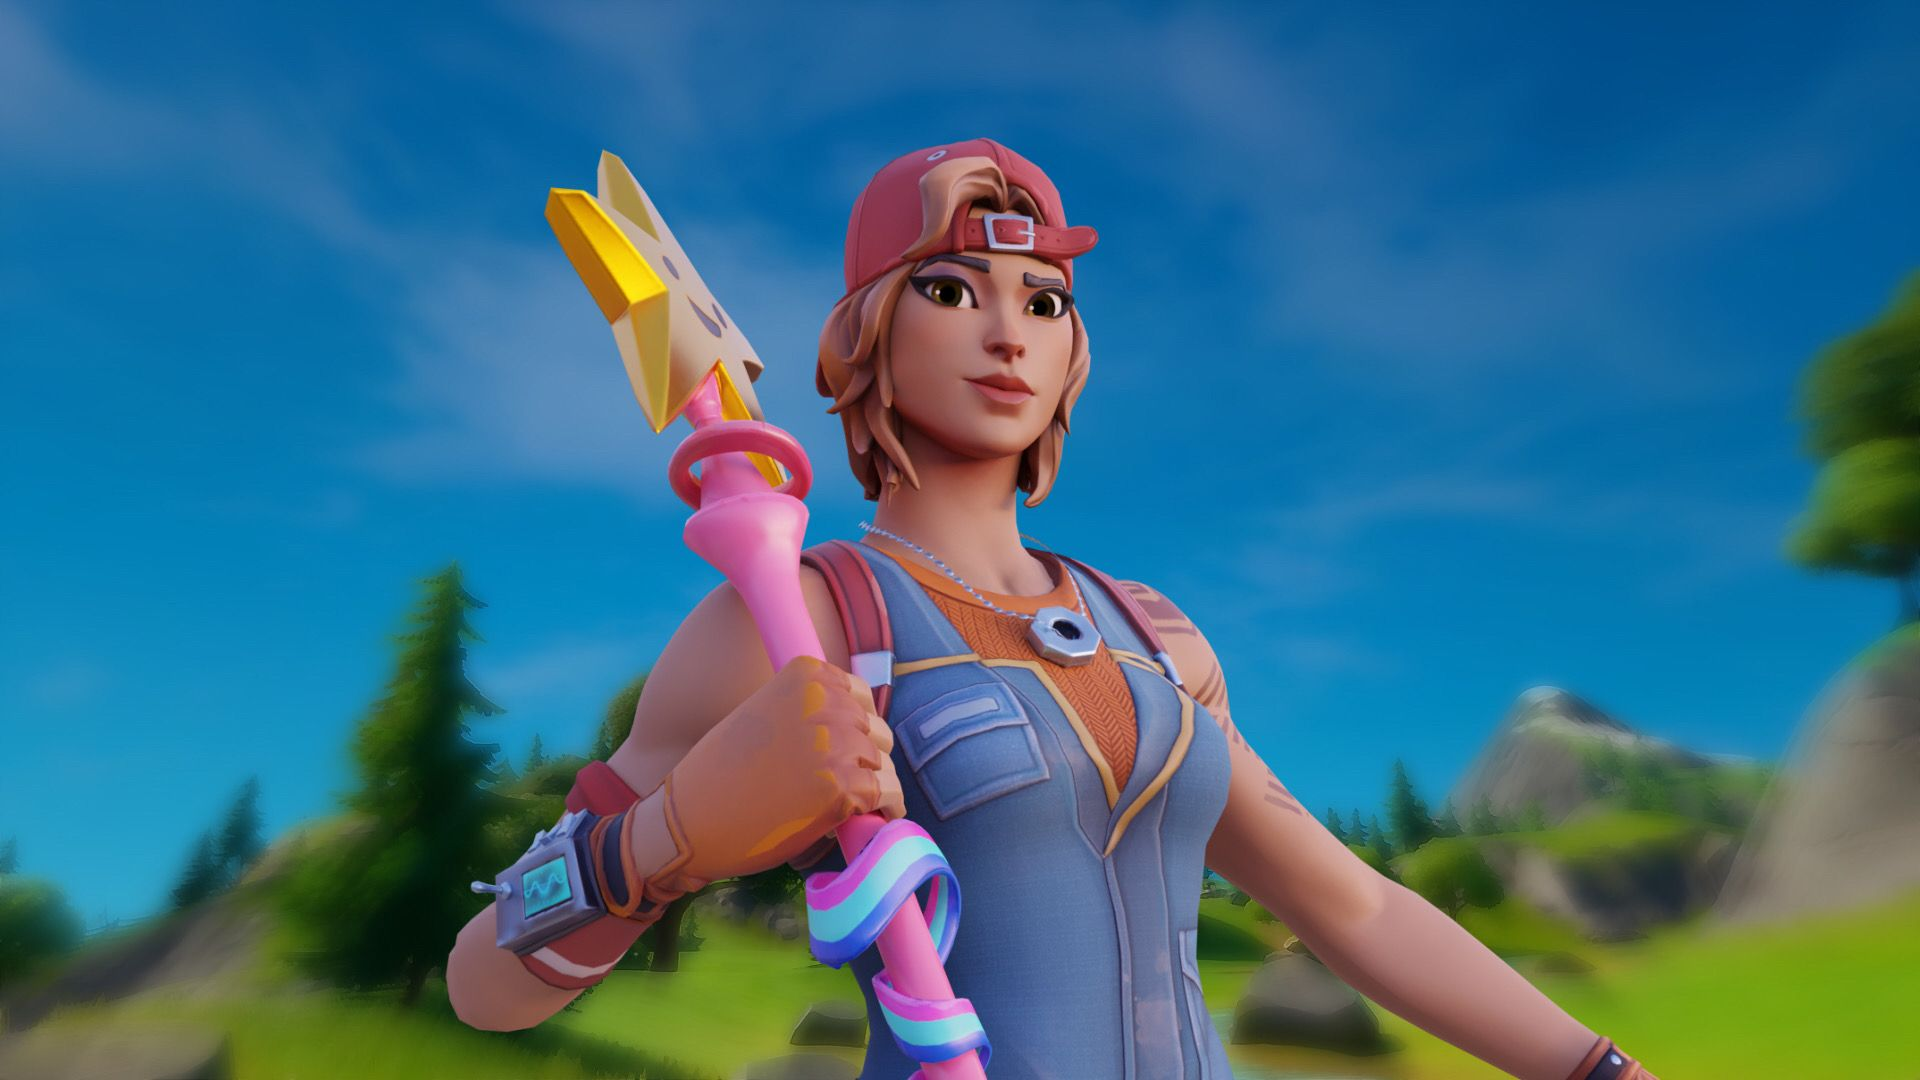 Cool Pictures In Fortnite